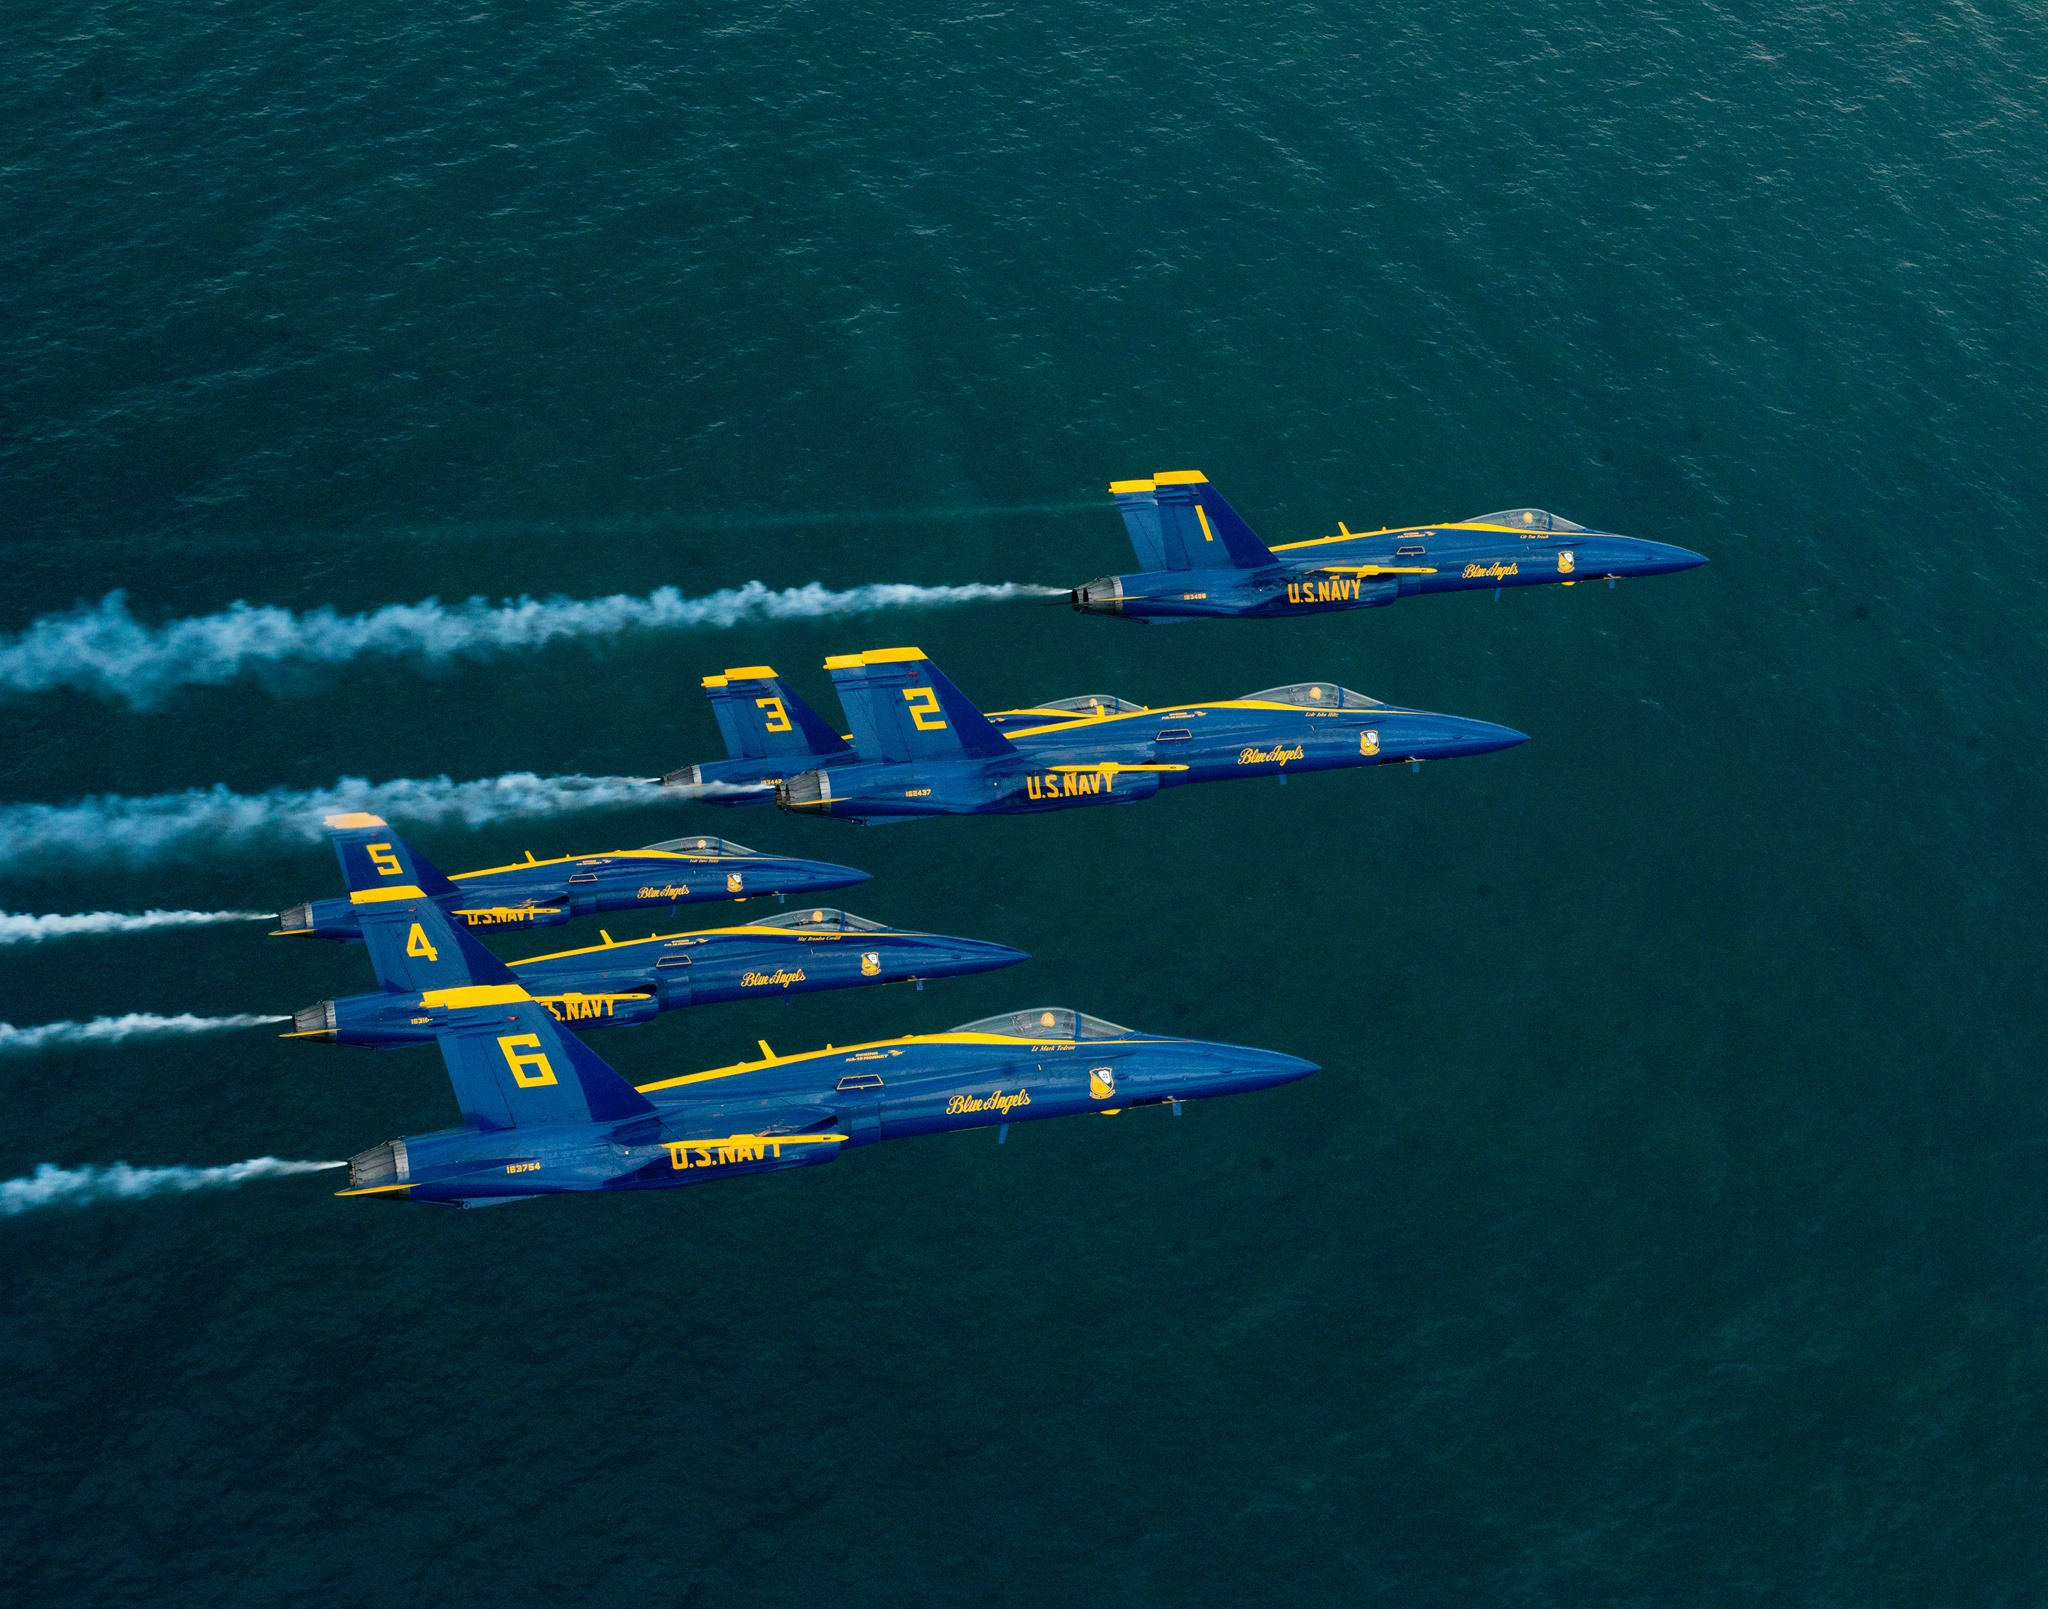 Six Blue Angels jets fly in formation over the Gulf of Mexico in Pensacola Beach FL.